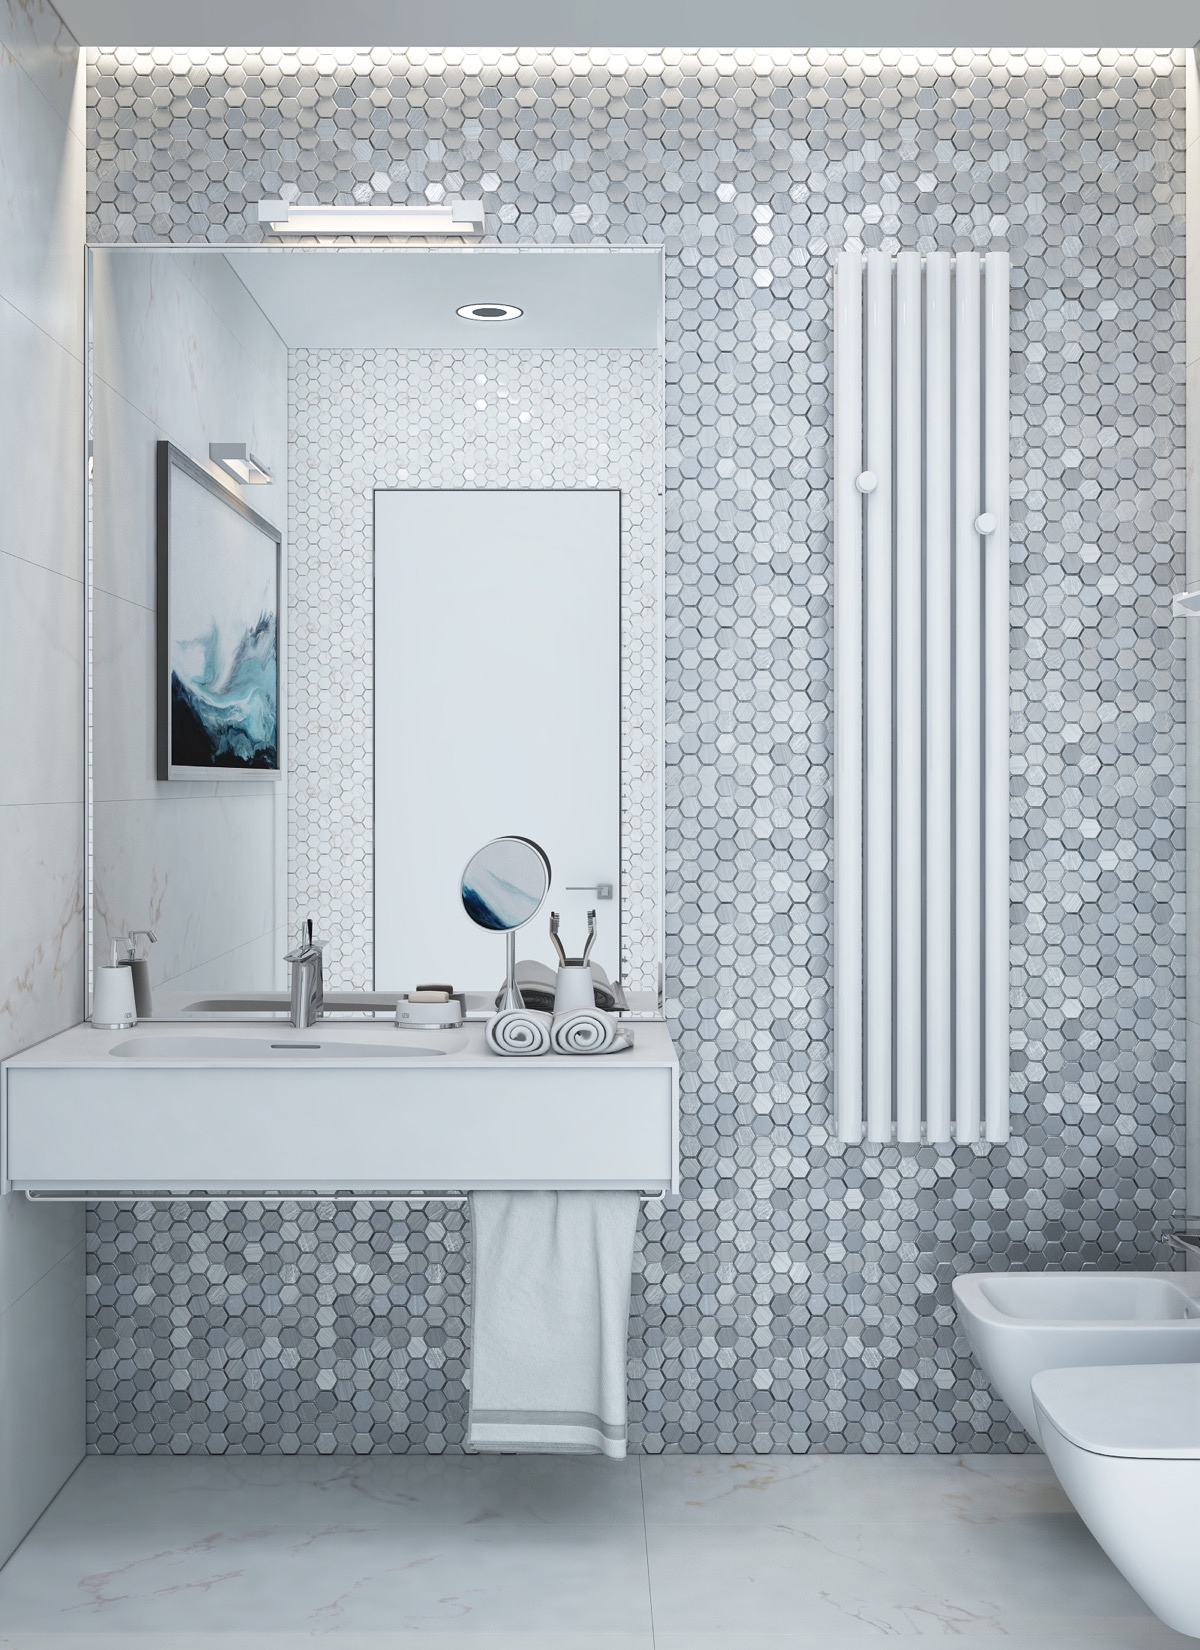 title | Minimalist Bathroom Tiles